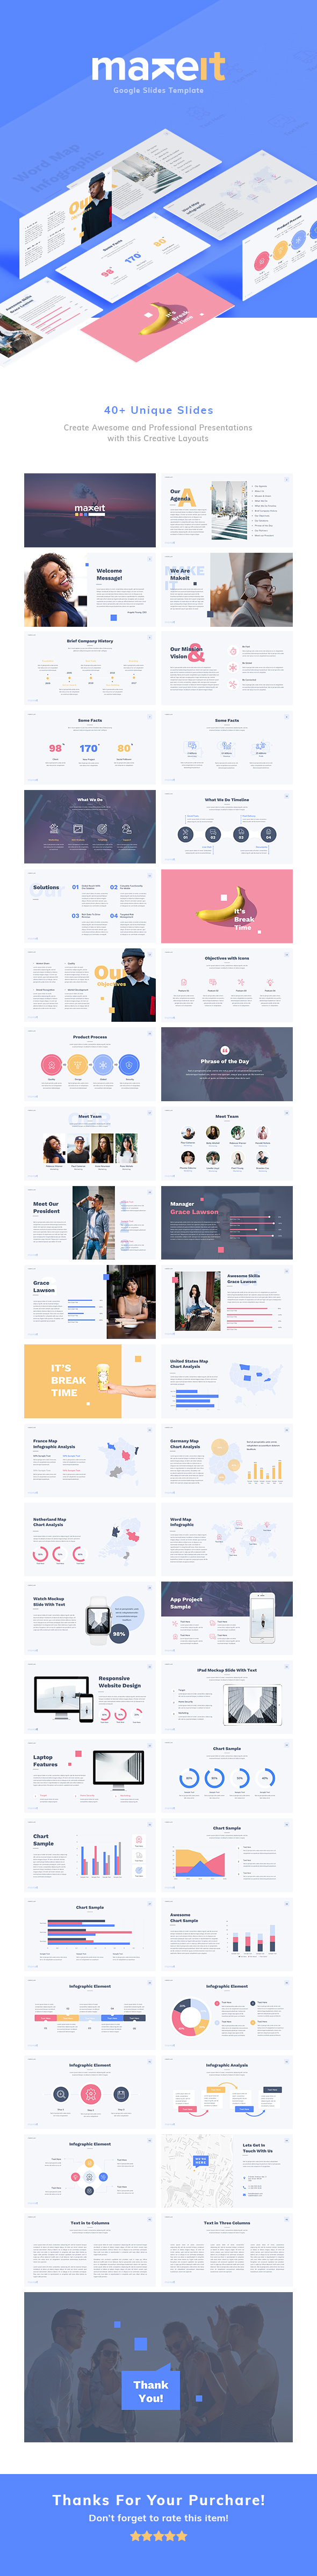 Makeit - Google Slides Presentation Template - Google Slides Presentation Templates